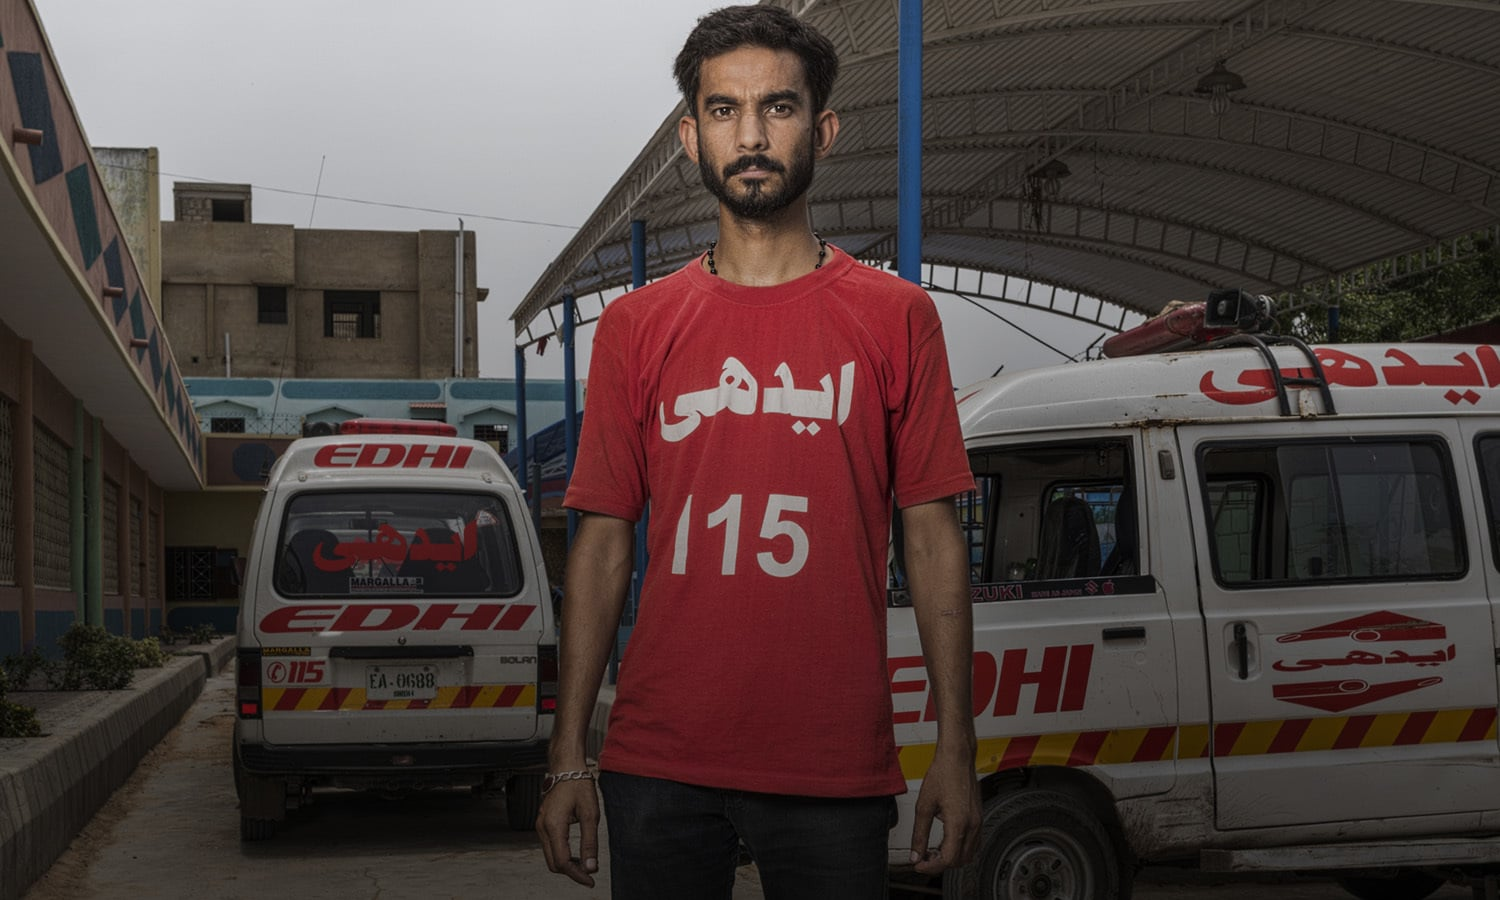 "<p>It was a routine day for Mujahid Rehman, an Edhi Emergency Services ambulance operator. He got to the scene of a shoot-out to help patients. Instead, he ended up becoming one of them. <p>Rehman was walking towards the injured lying on the street when he, ""felt something like a stone"" hit him in the back. He would later learn that it was a bullet."